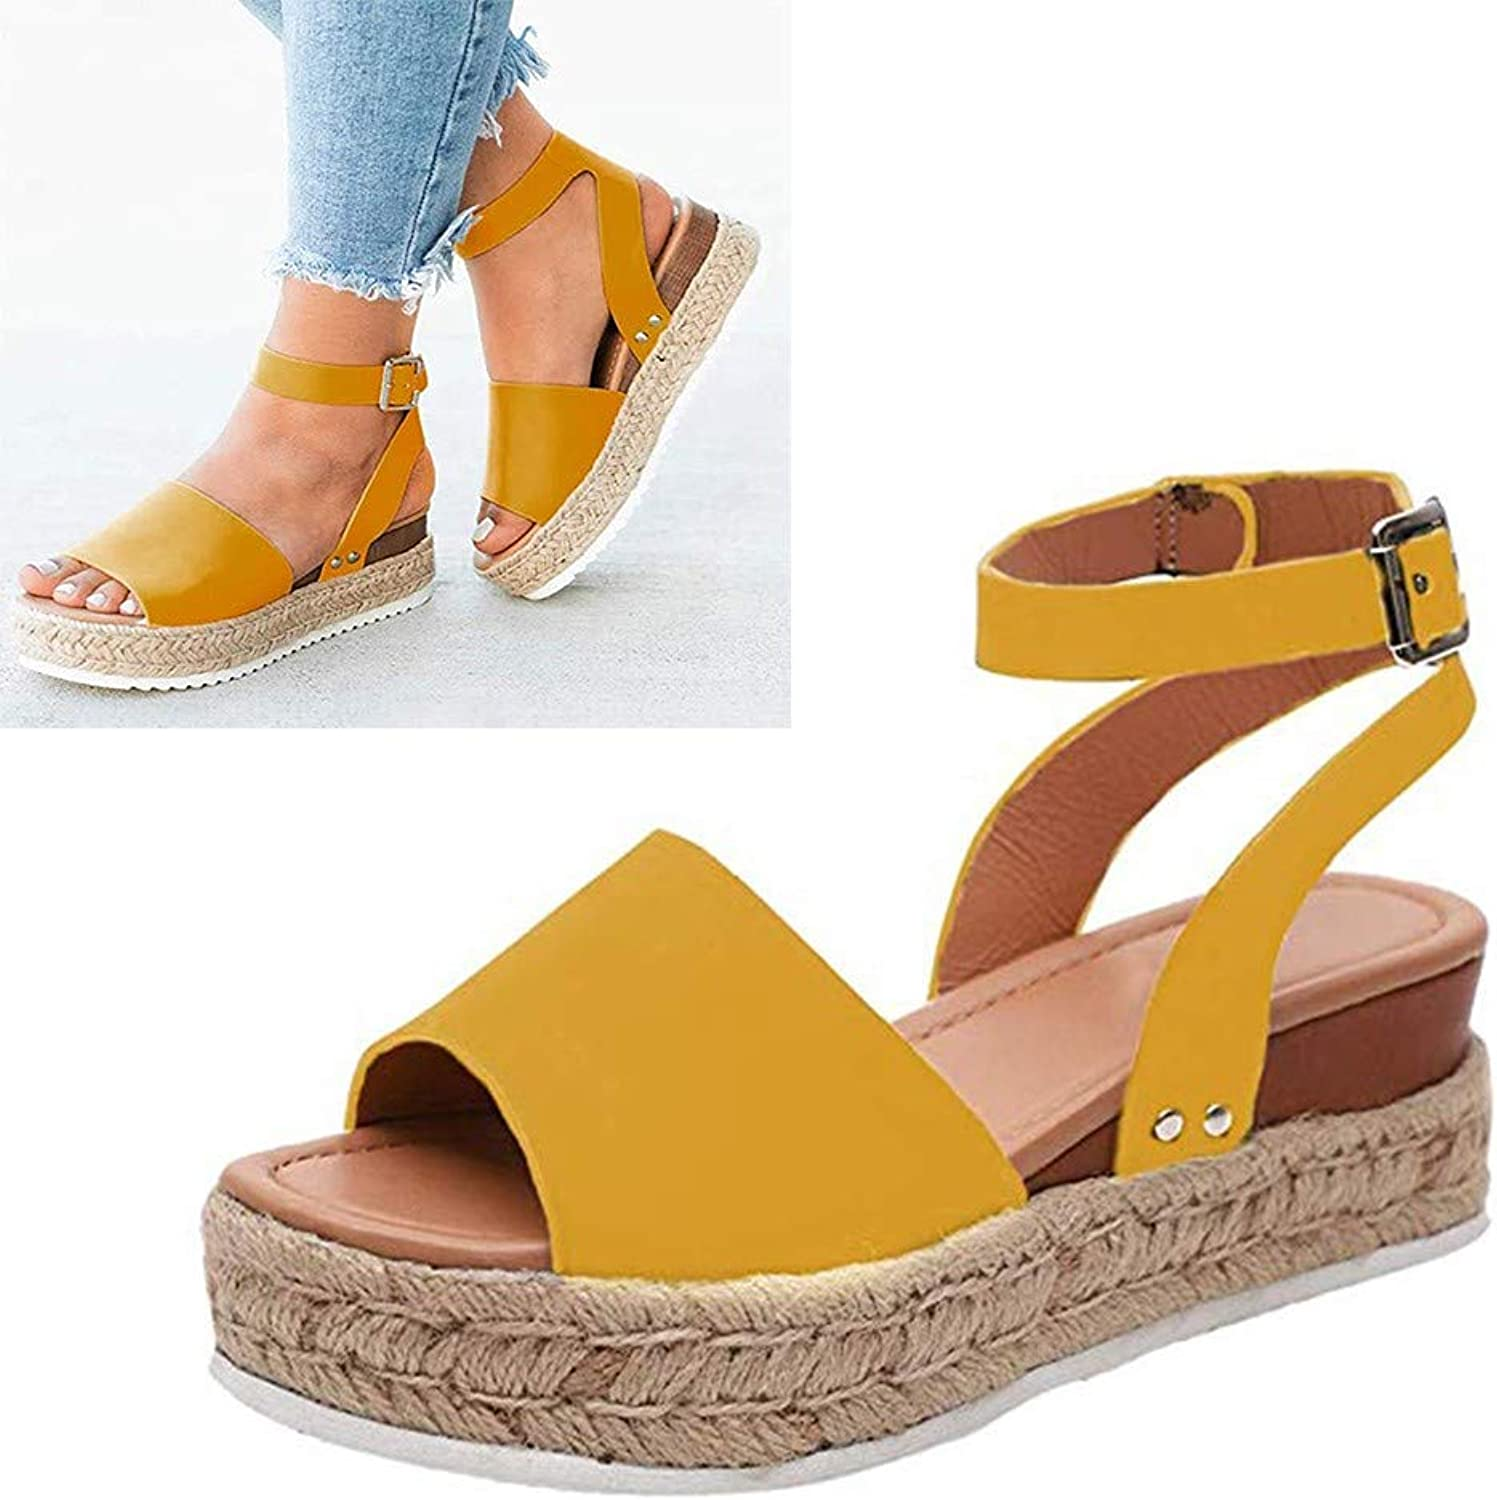 Summer Women Retro Wedges Sandals Peep Toe Buckle Ankle Strappy for Ladies Fashion Flat Lace Up 5 cm High Heels Leather Slingback Platform shoes Casual Comfy Espadrilles(Yellow),Yellow,43